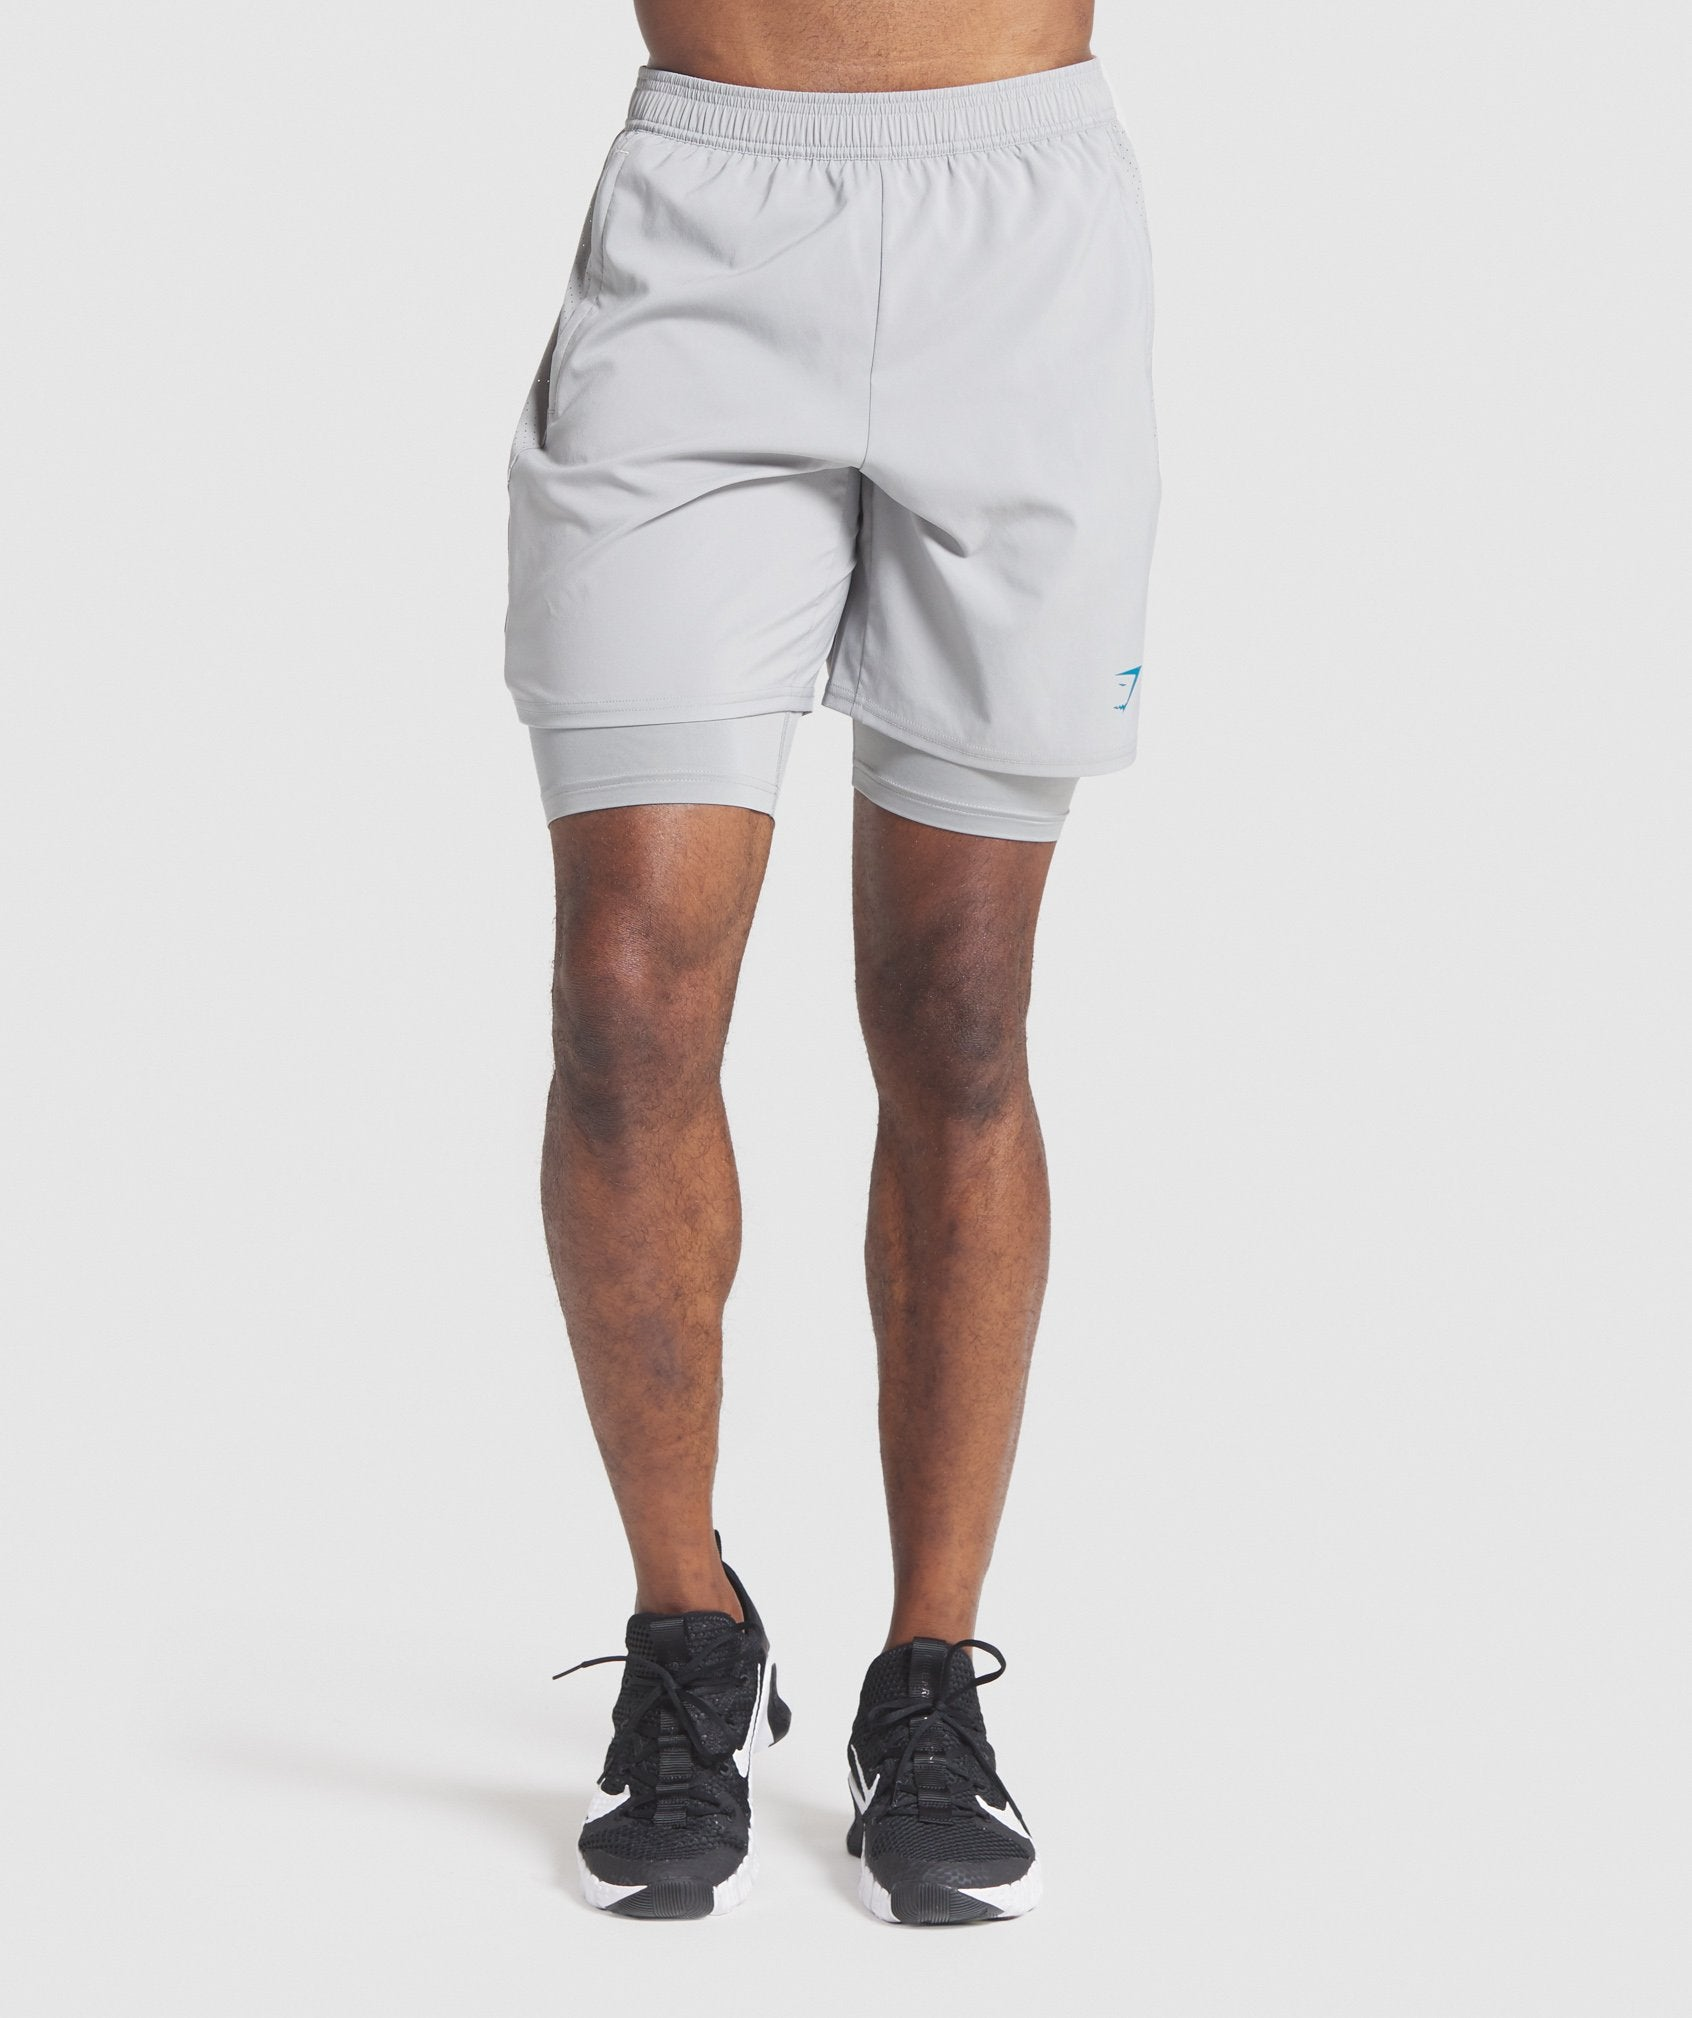 Classier: Buy Gymshark Aspect 2 in 1 Shorts - Smokey Grey - Gymshark